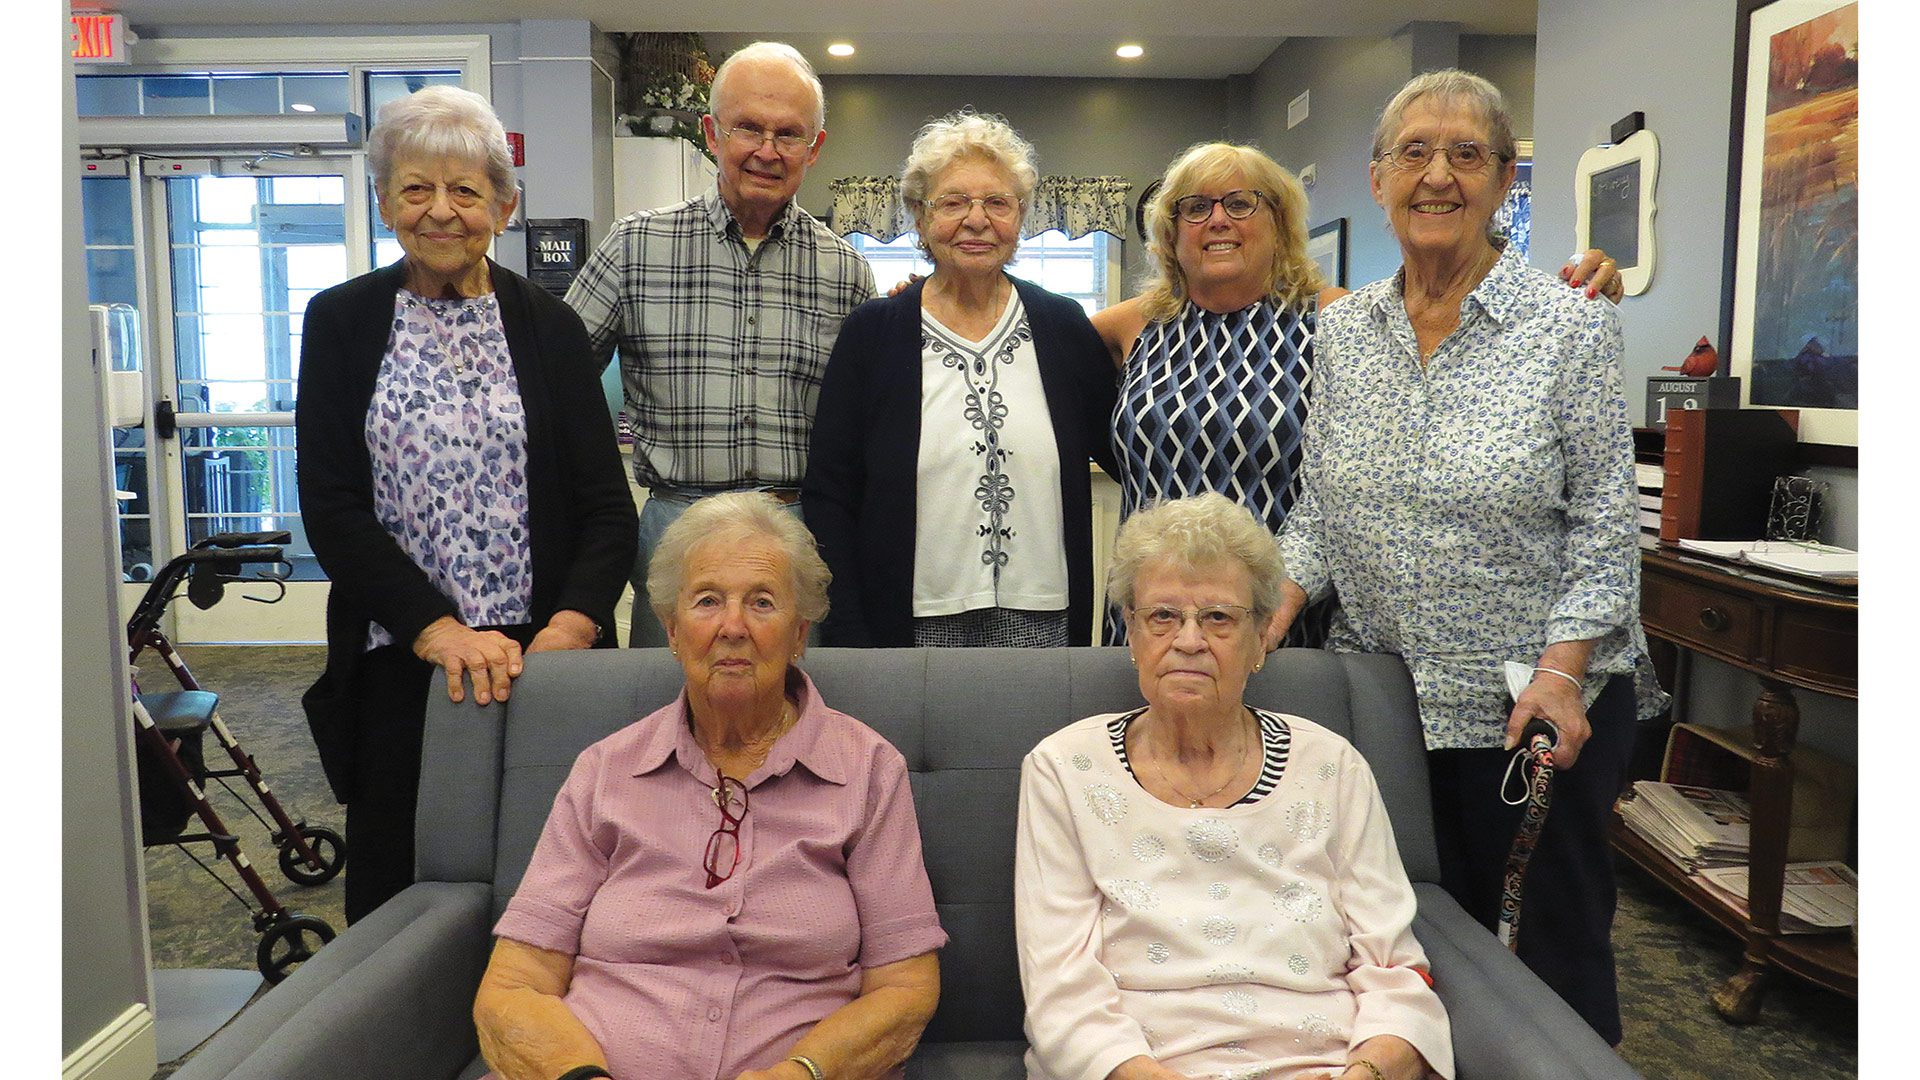 Beth Cardillo, seen here with several residents of Armbrook Village